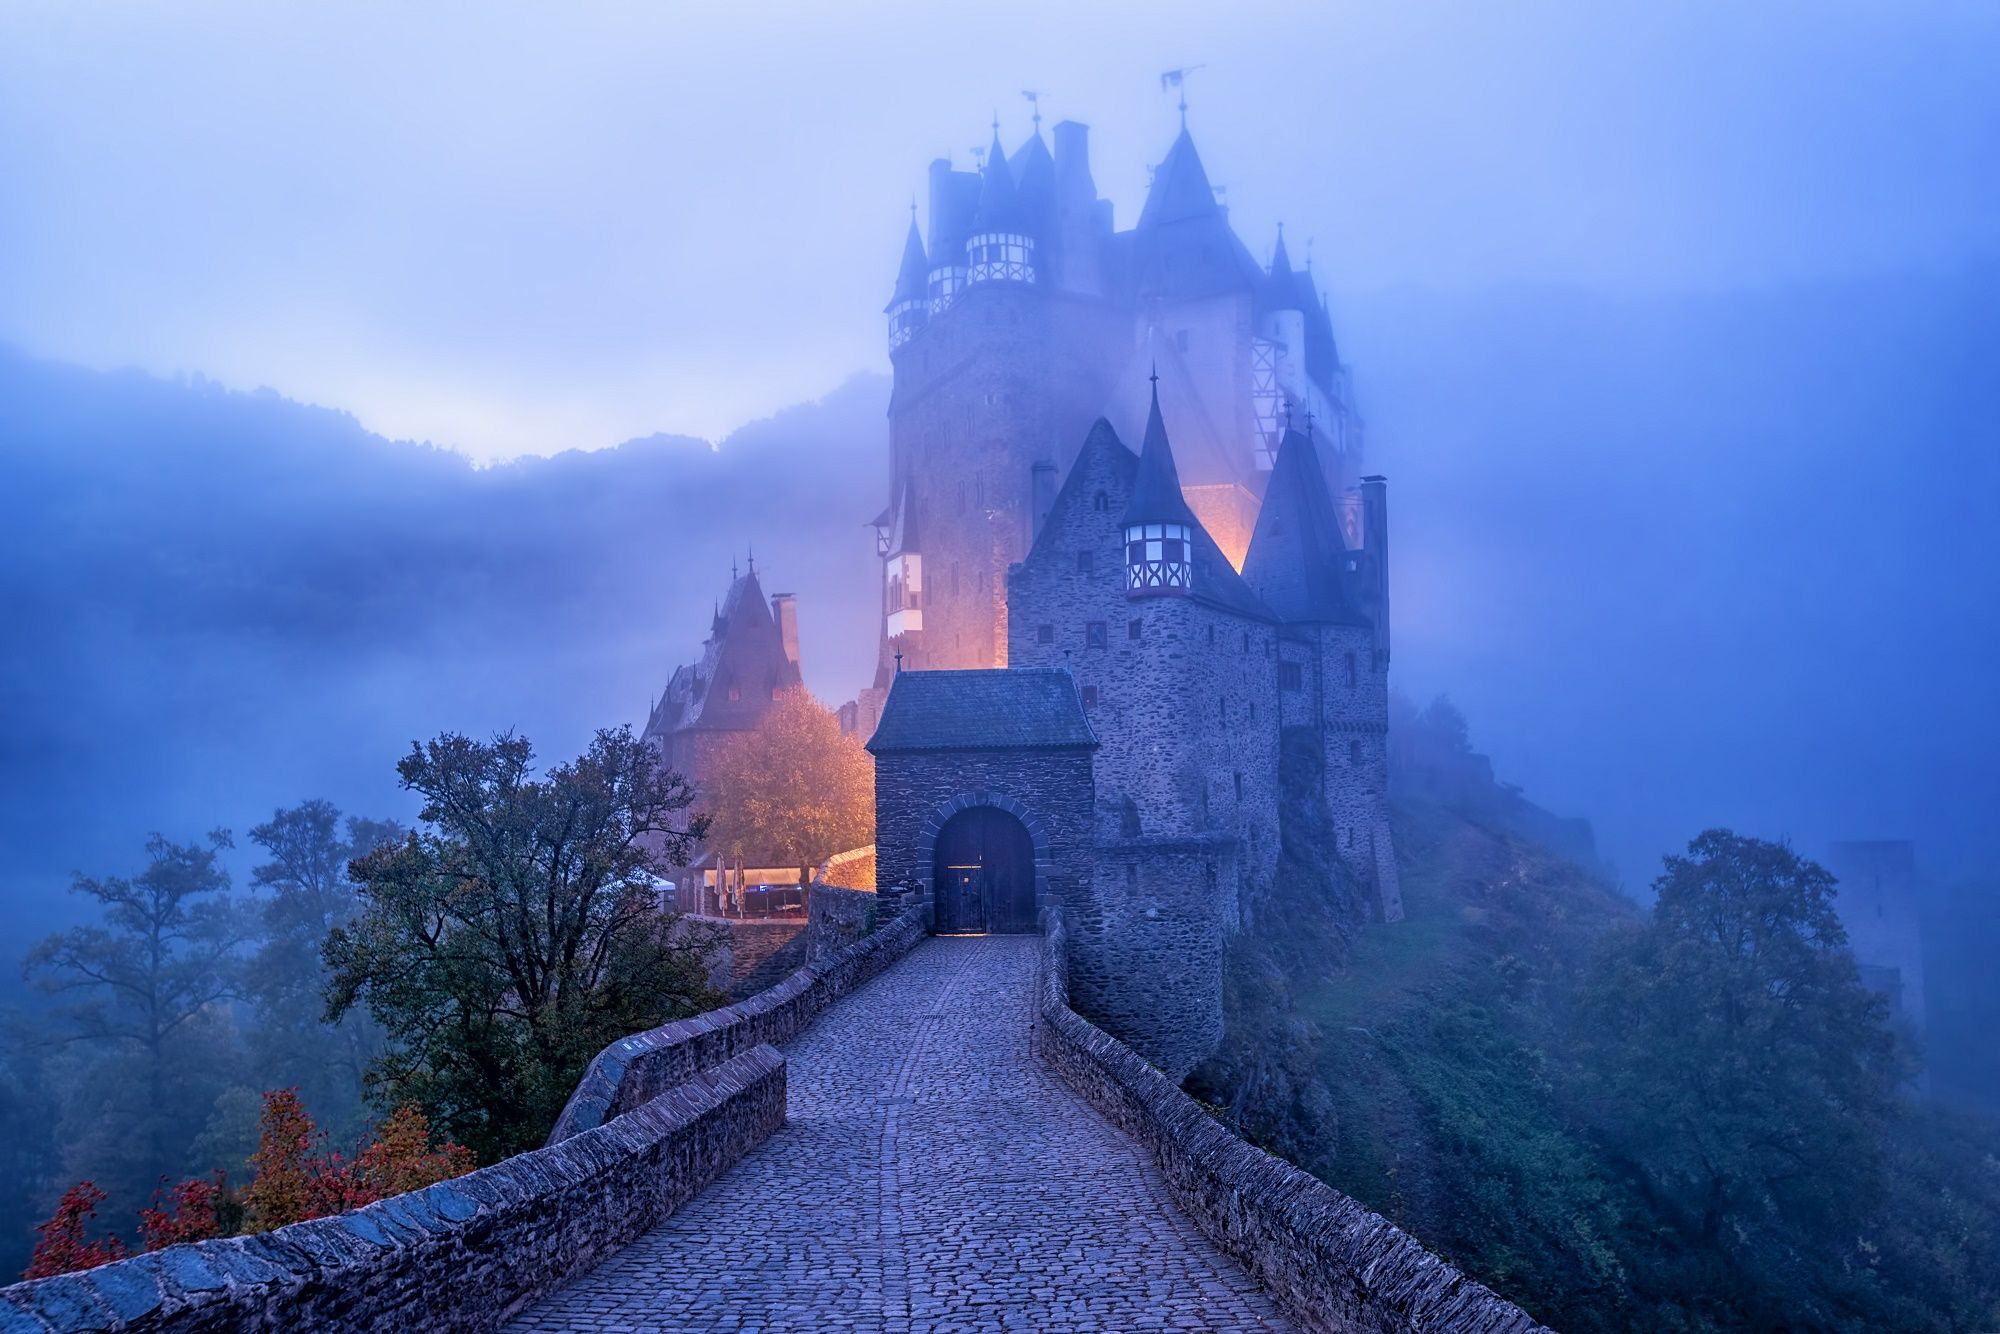 farenexus.com/  Eltz Castle is one of the most impressive castle in Germany. #Eltzcastle #impressive #famous #castles #Germany #farenexus #cheapairtickets #cheapairline #montreal #canada